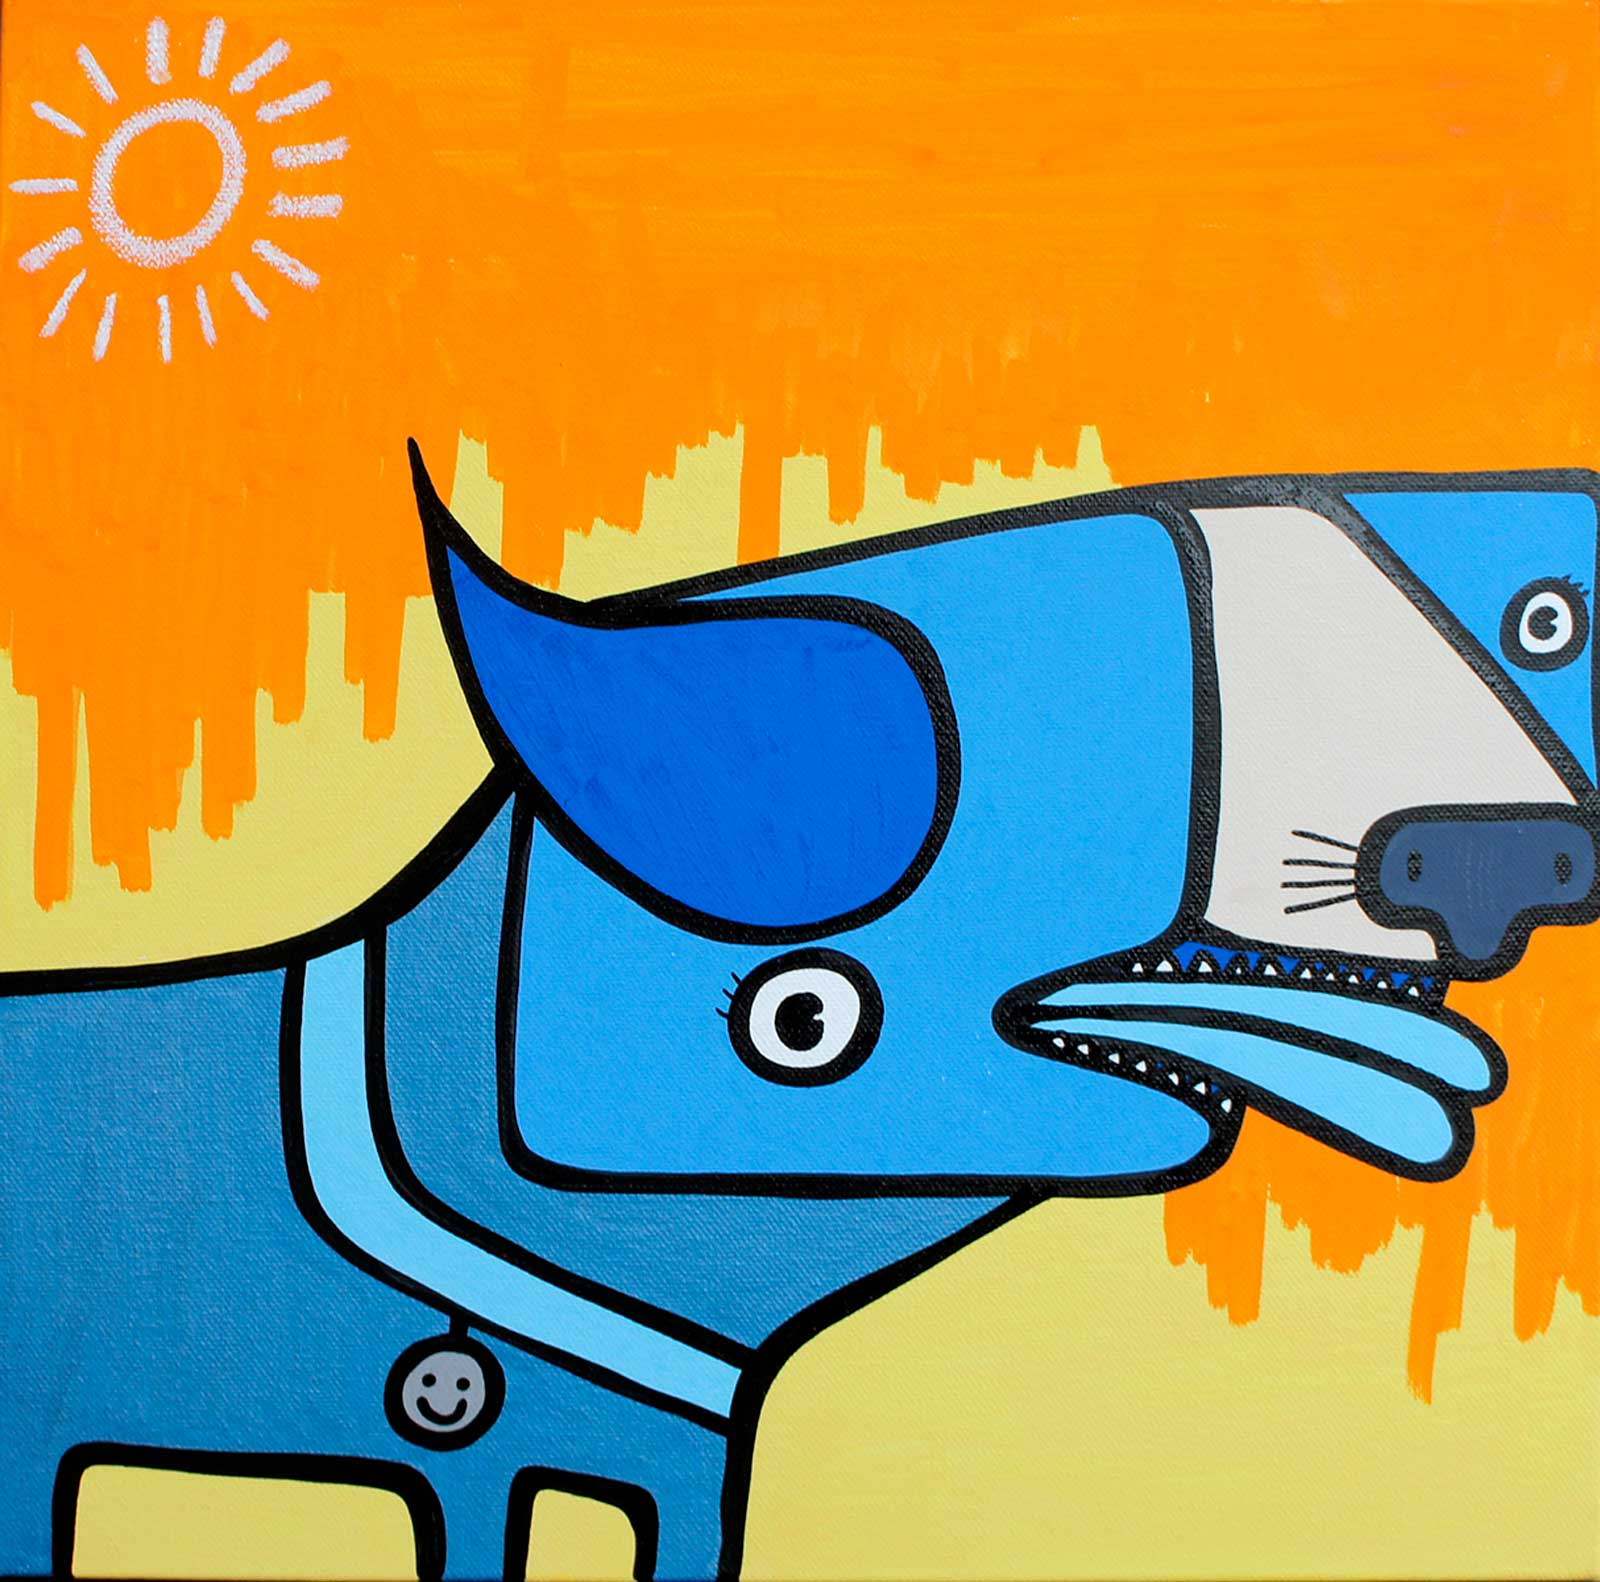 The Dog & The Sun, Kev Munday